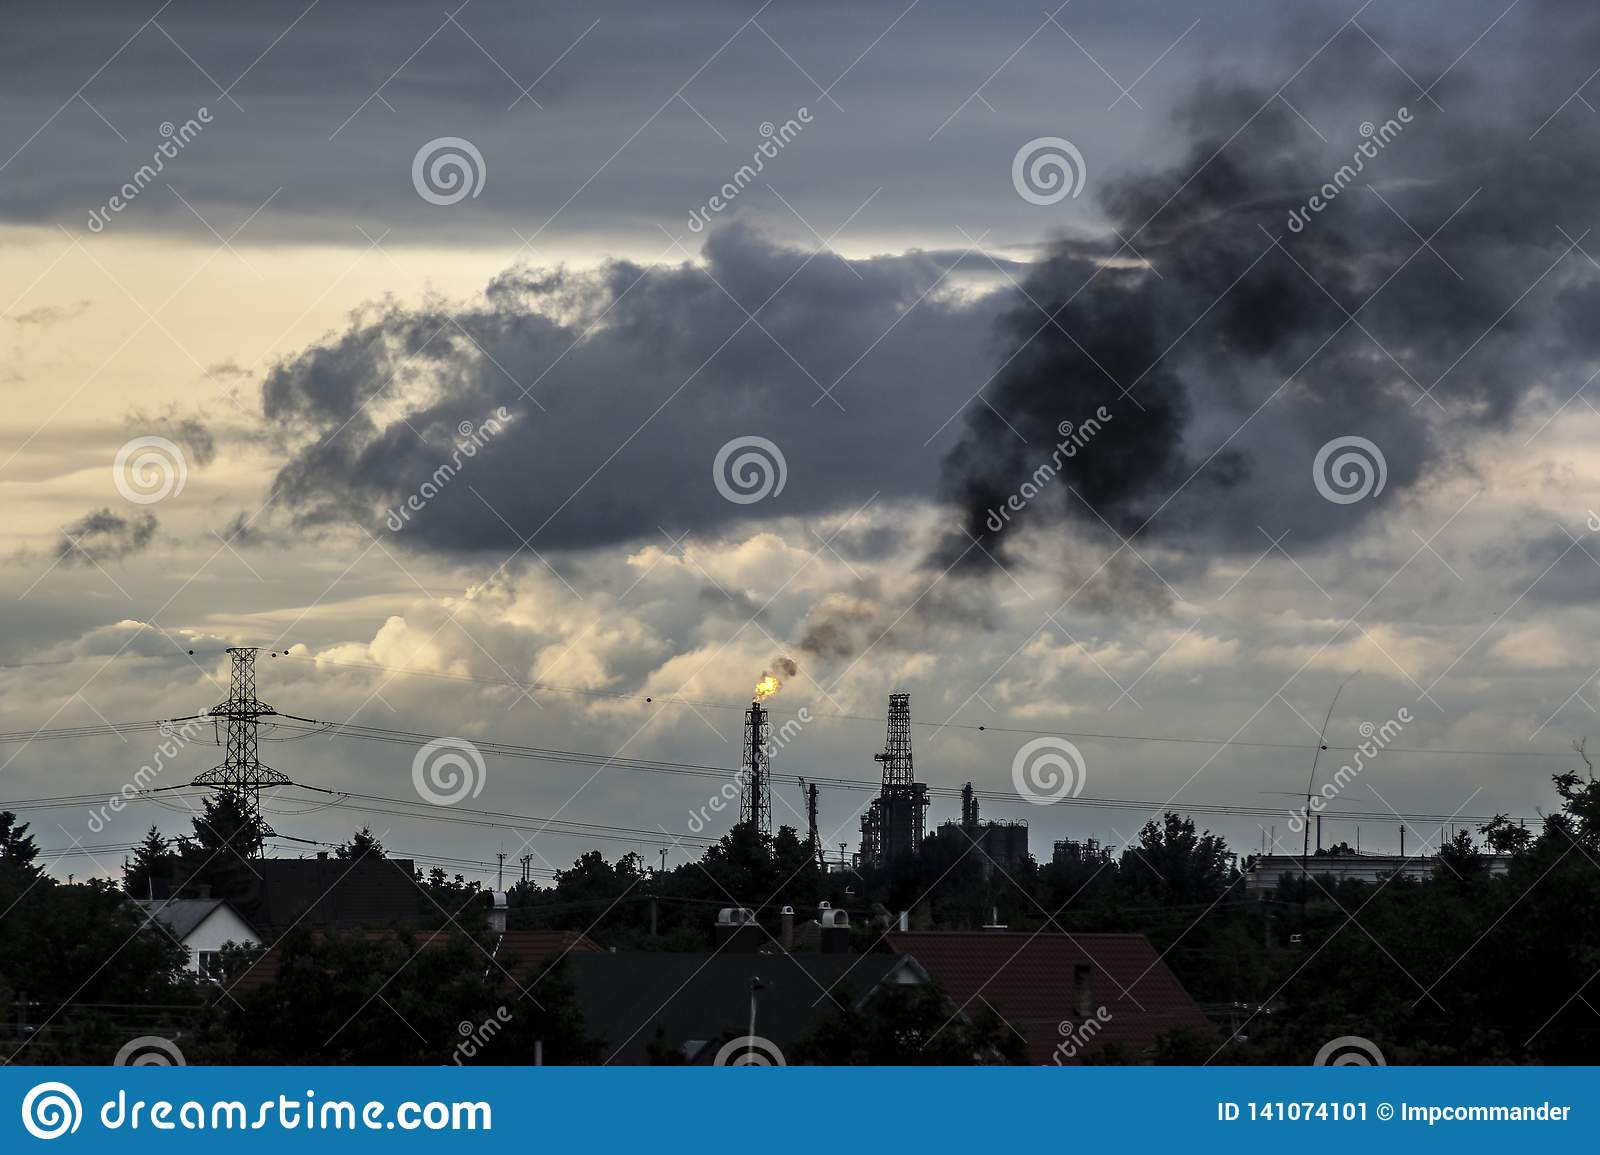 What can we do against the factories air pollution?